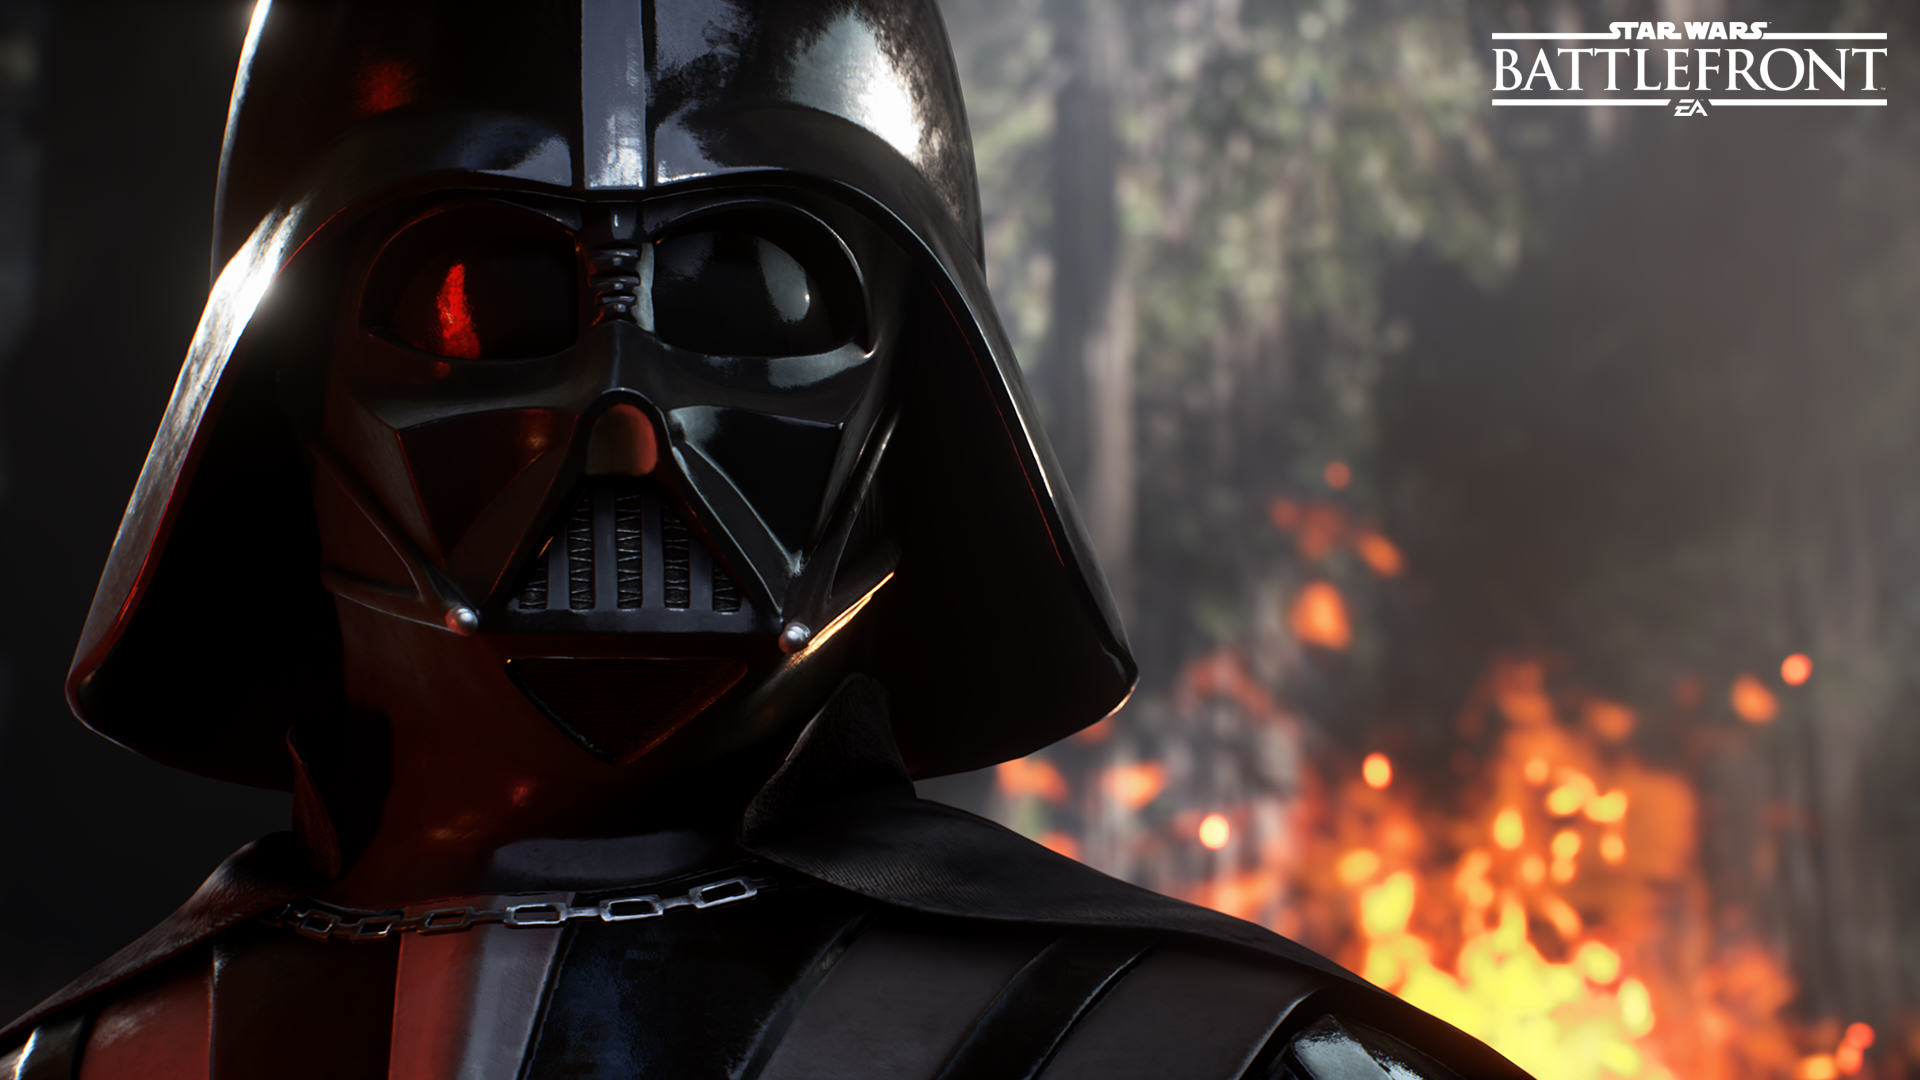 Star Wars: Battlefront Looks Stunning In These Desktop Backgrounds And Images UNILAD ImzaoT7 Imgur2